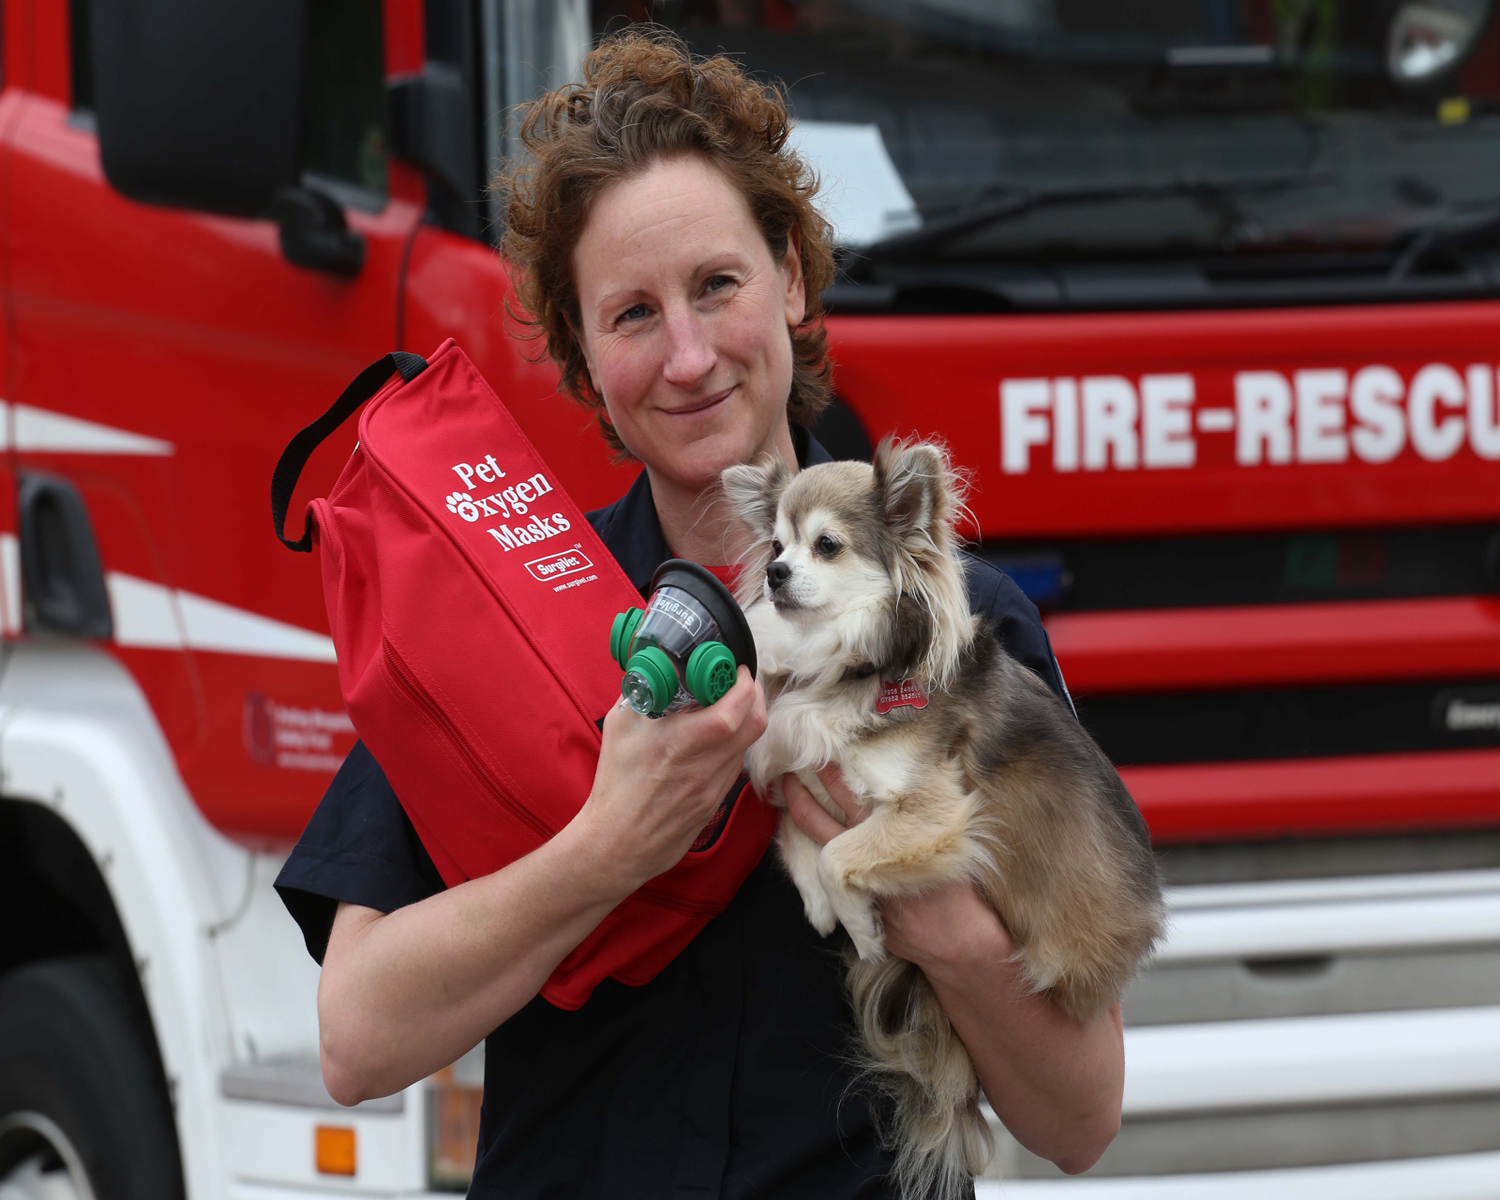 Telford firefighter Louise Fletcher with her pet Chihuahua, Cloud, raised funds to buy five of the masks.